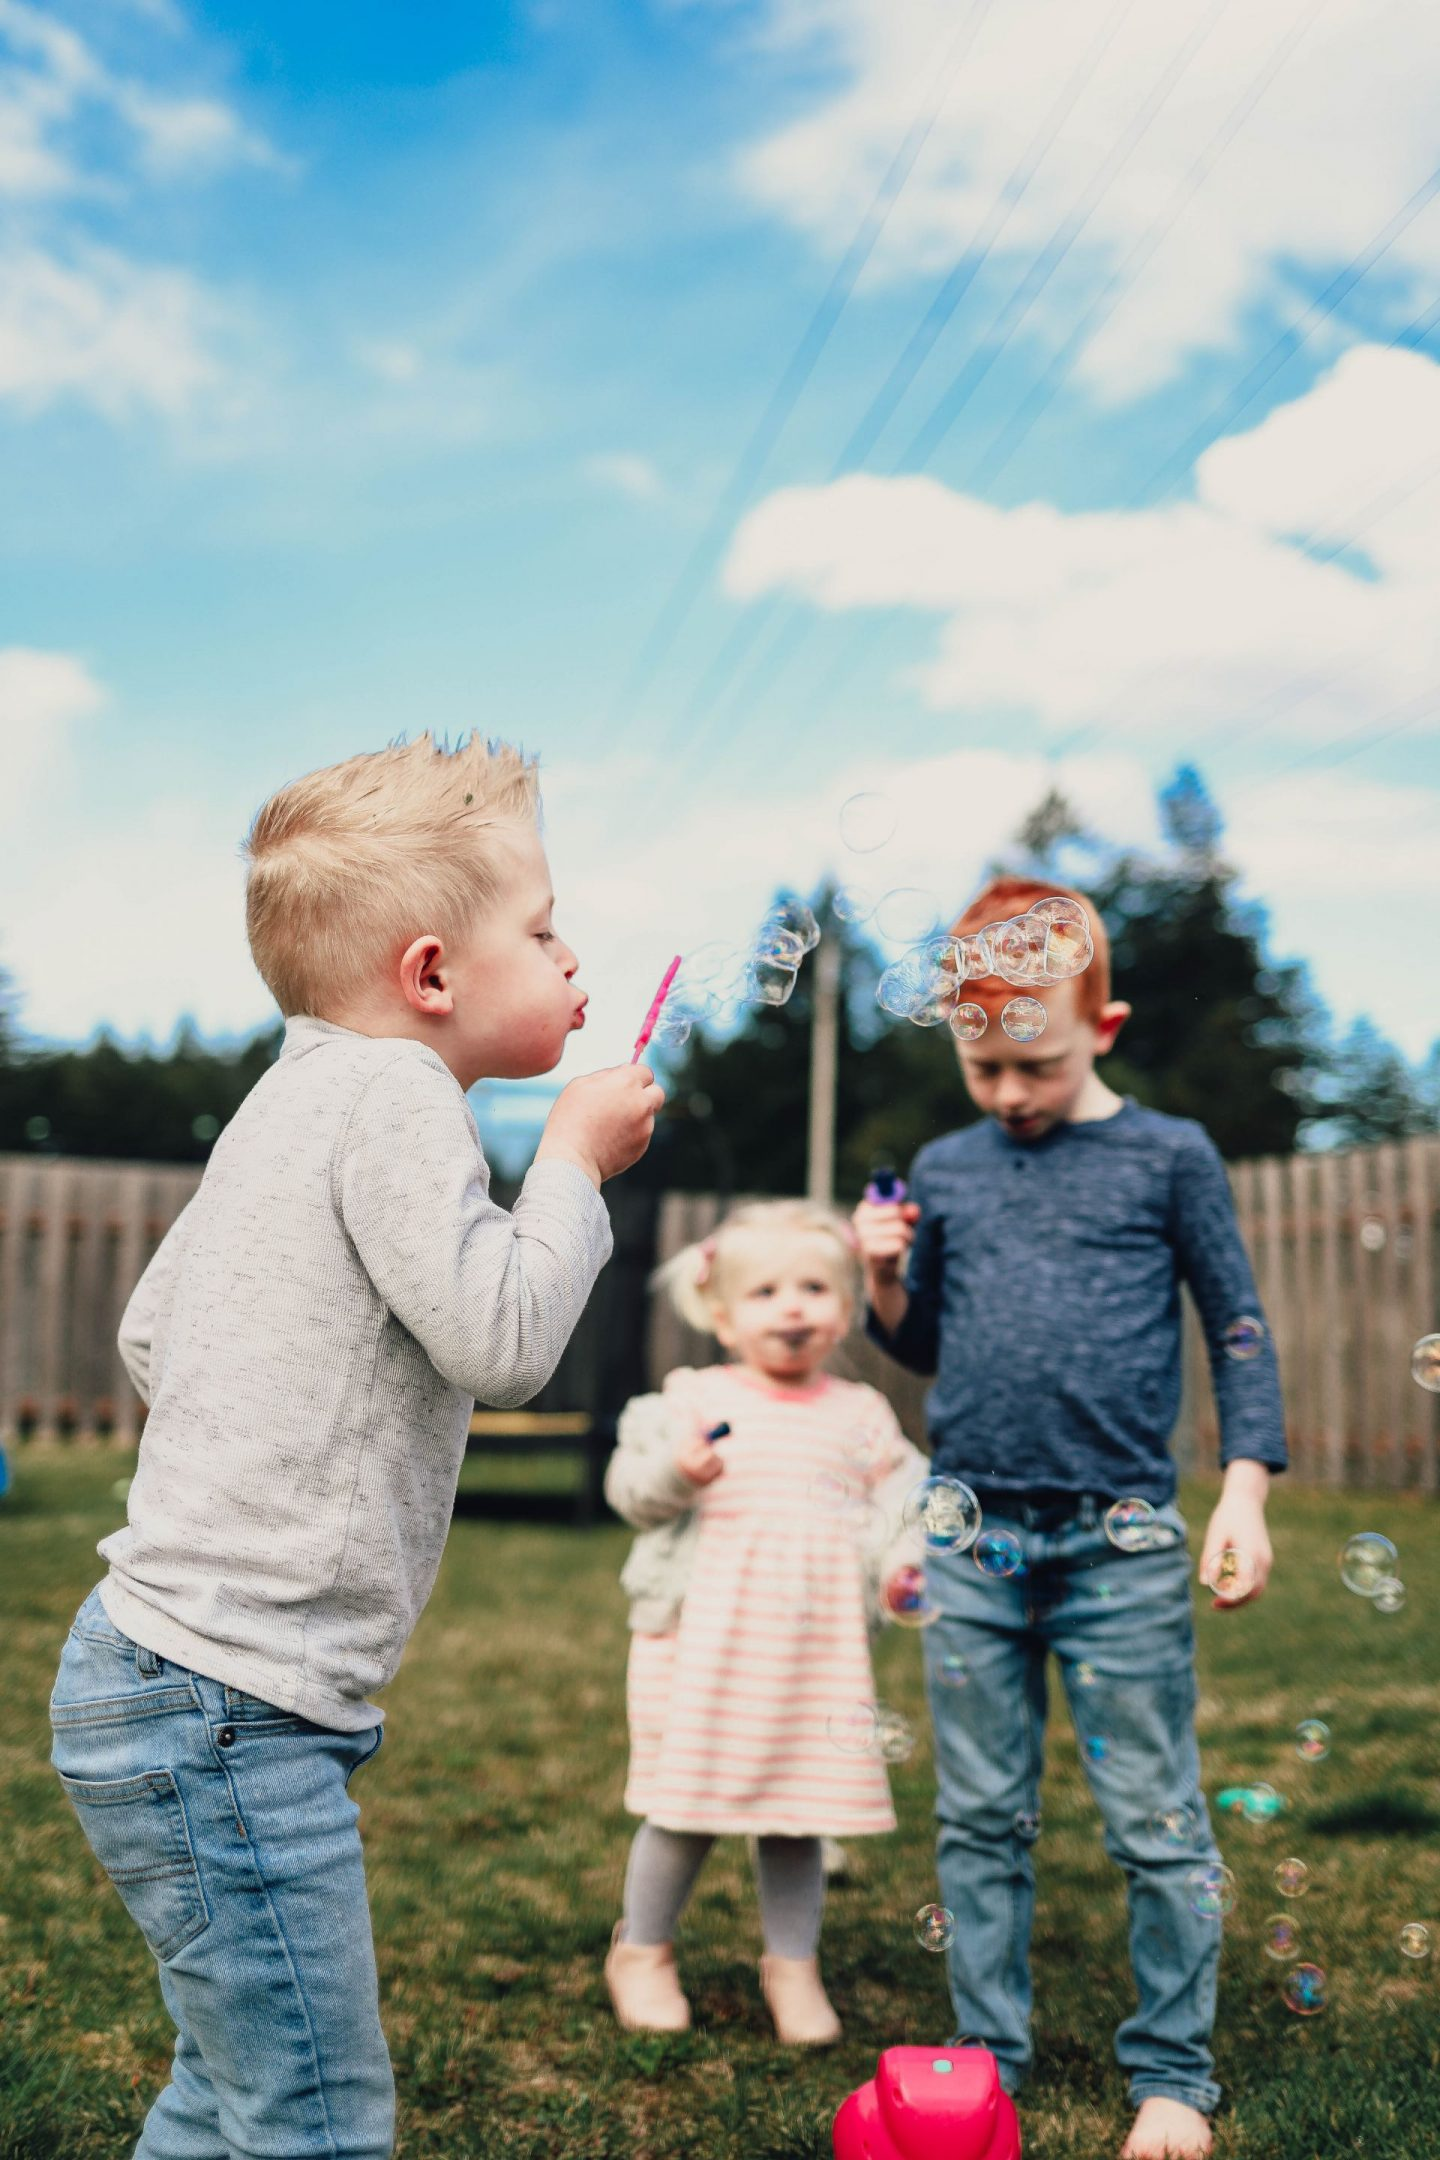 blowing bubbles easter 2021